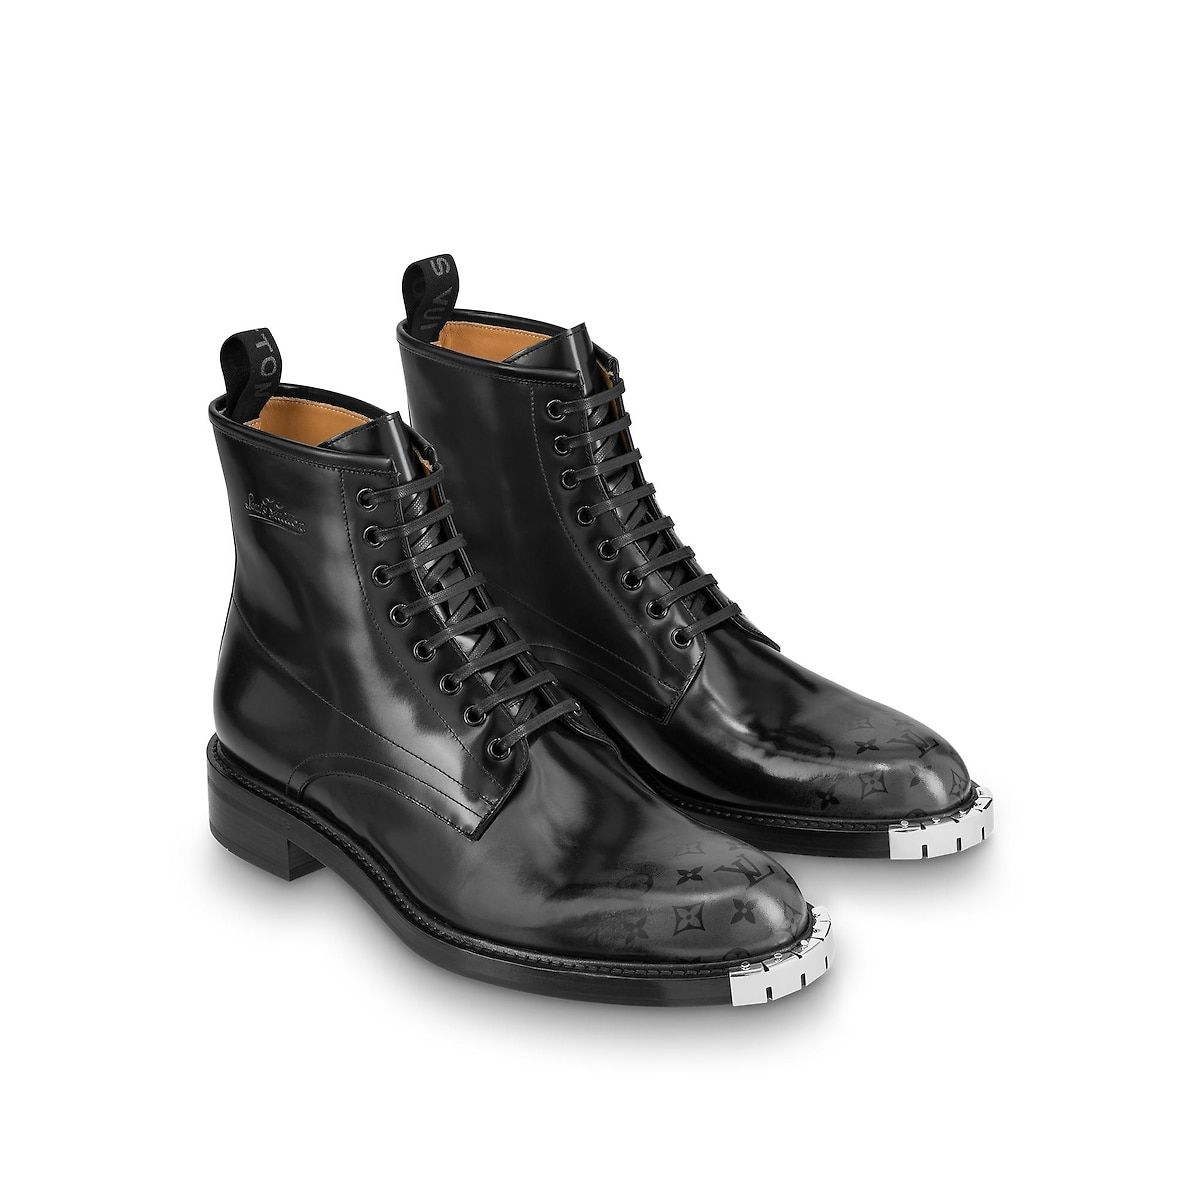 SHOES BOOTS Voltaire Ankle boot